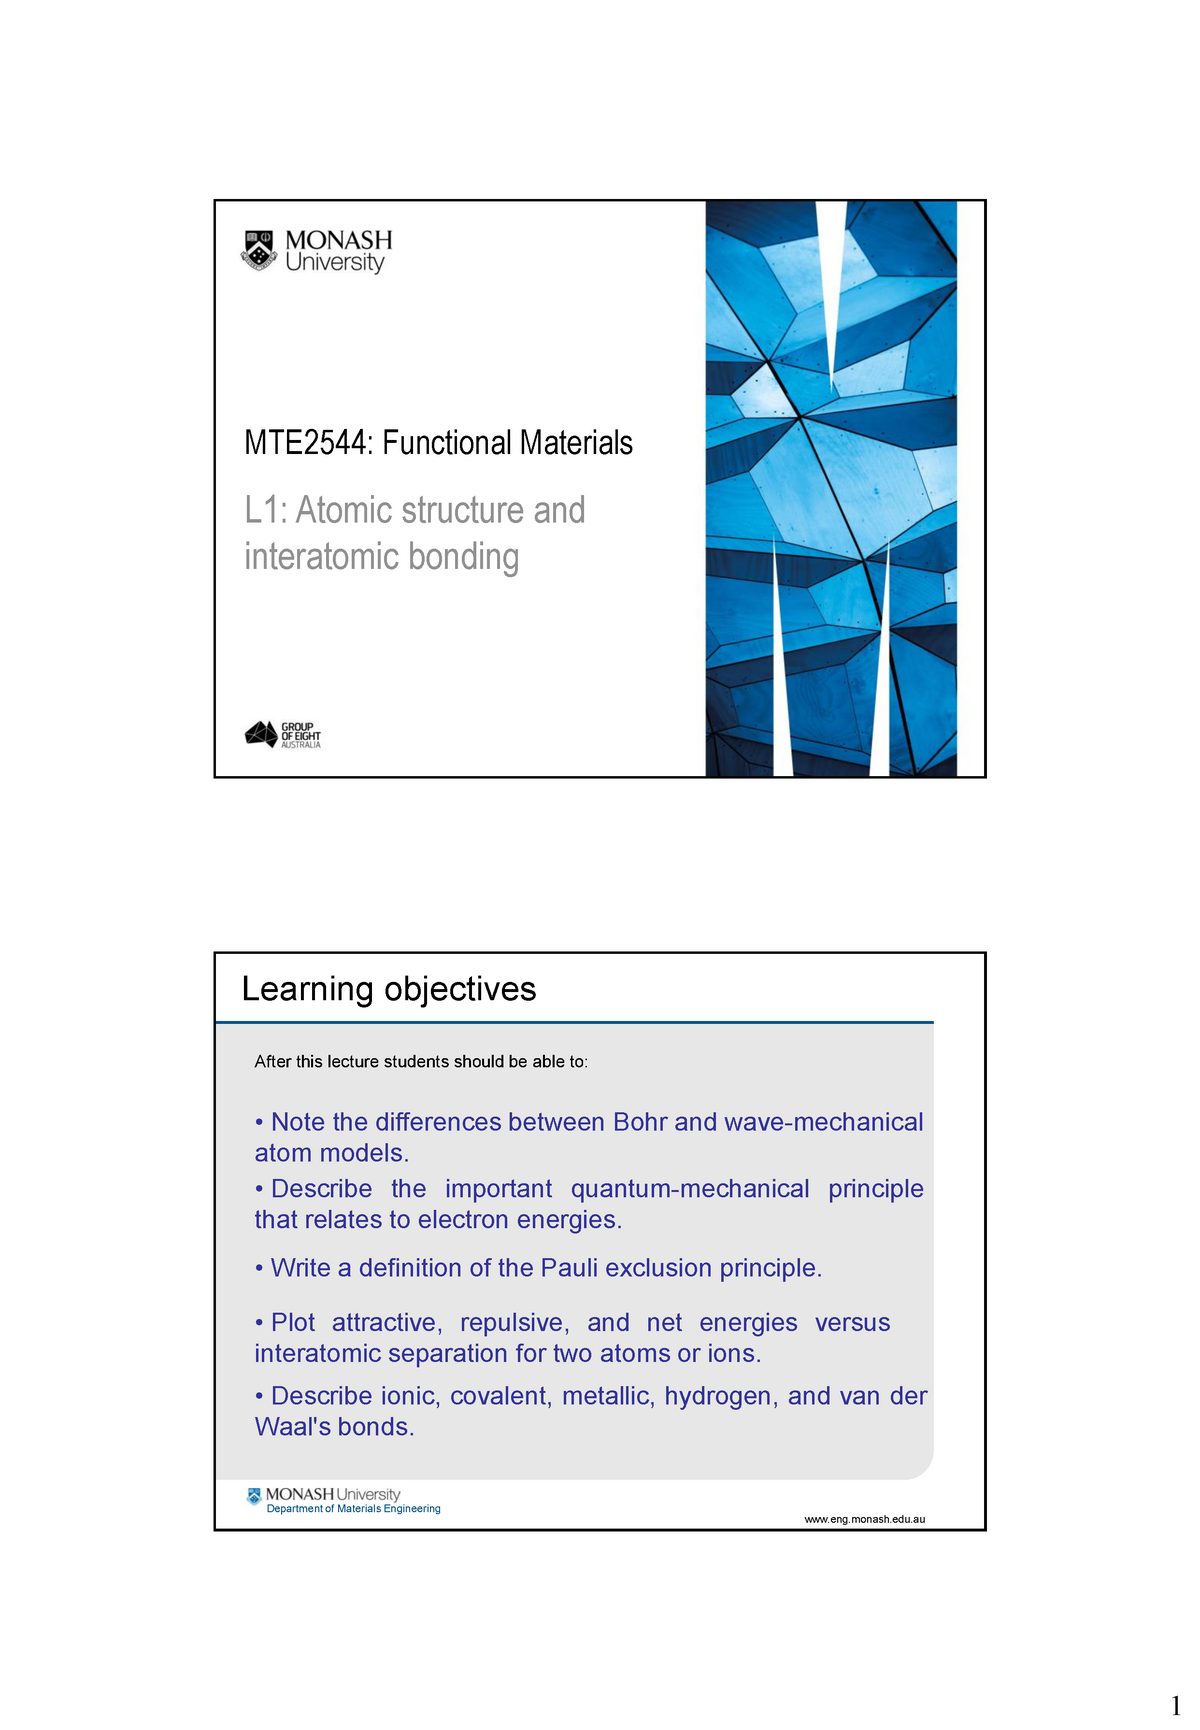 Lecture notes, lecture 1 - Functional materials - mte2544